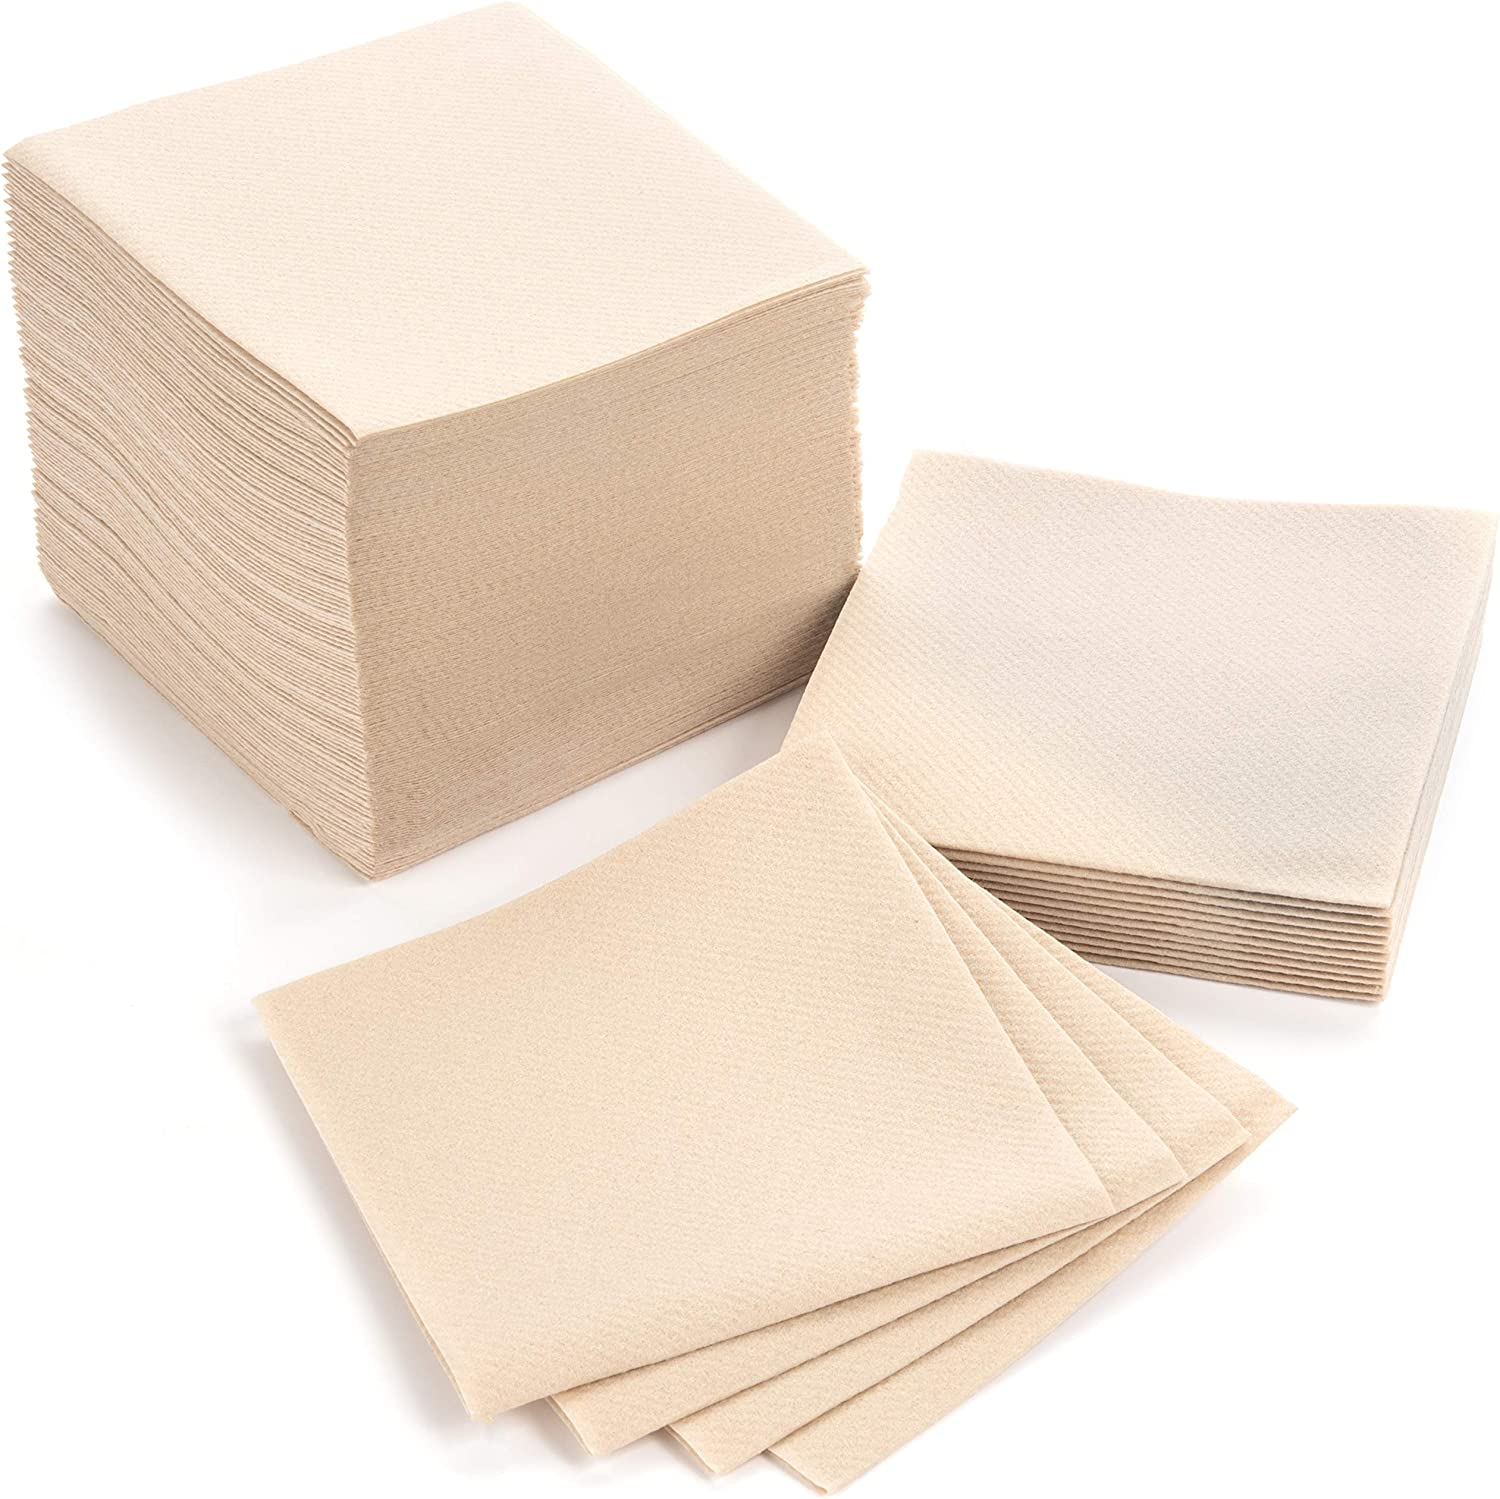 """American Homestead Cocktail Napkins - Small 4"""" x 4"""" Linen-Like Disposable Beverage/Bar Napkins - Bulk Square Napkins Eco-Friendly & Compostable - Everyday Use, Party or Wedding (100 Count, Sand)"""